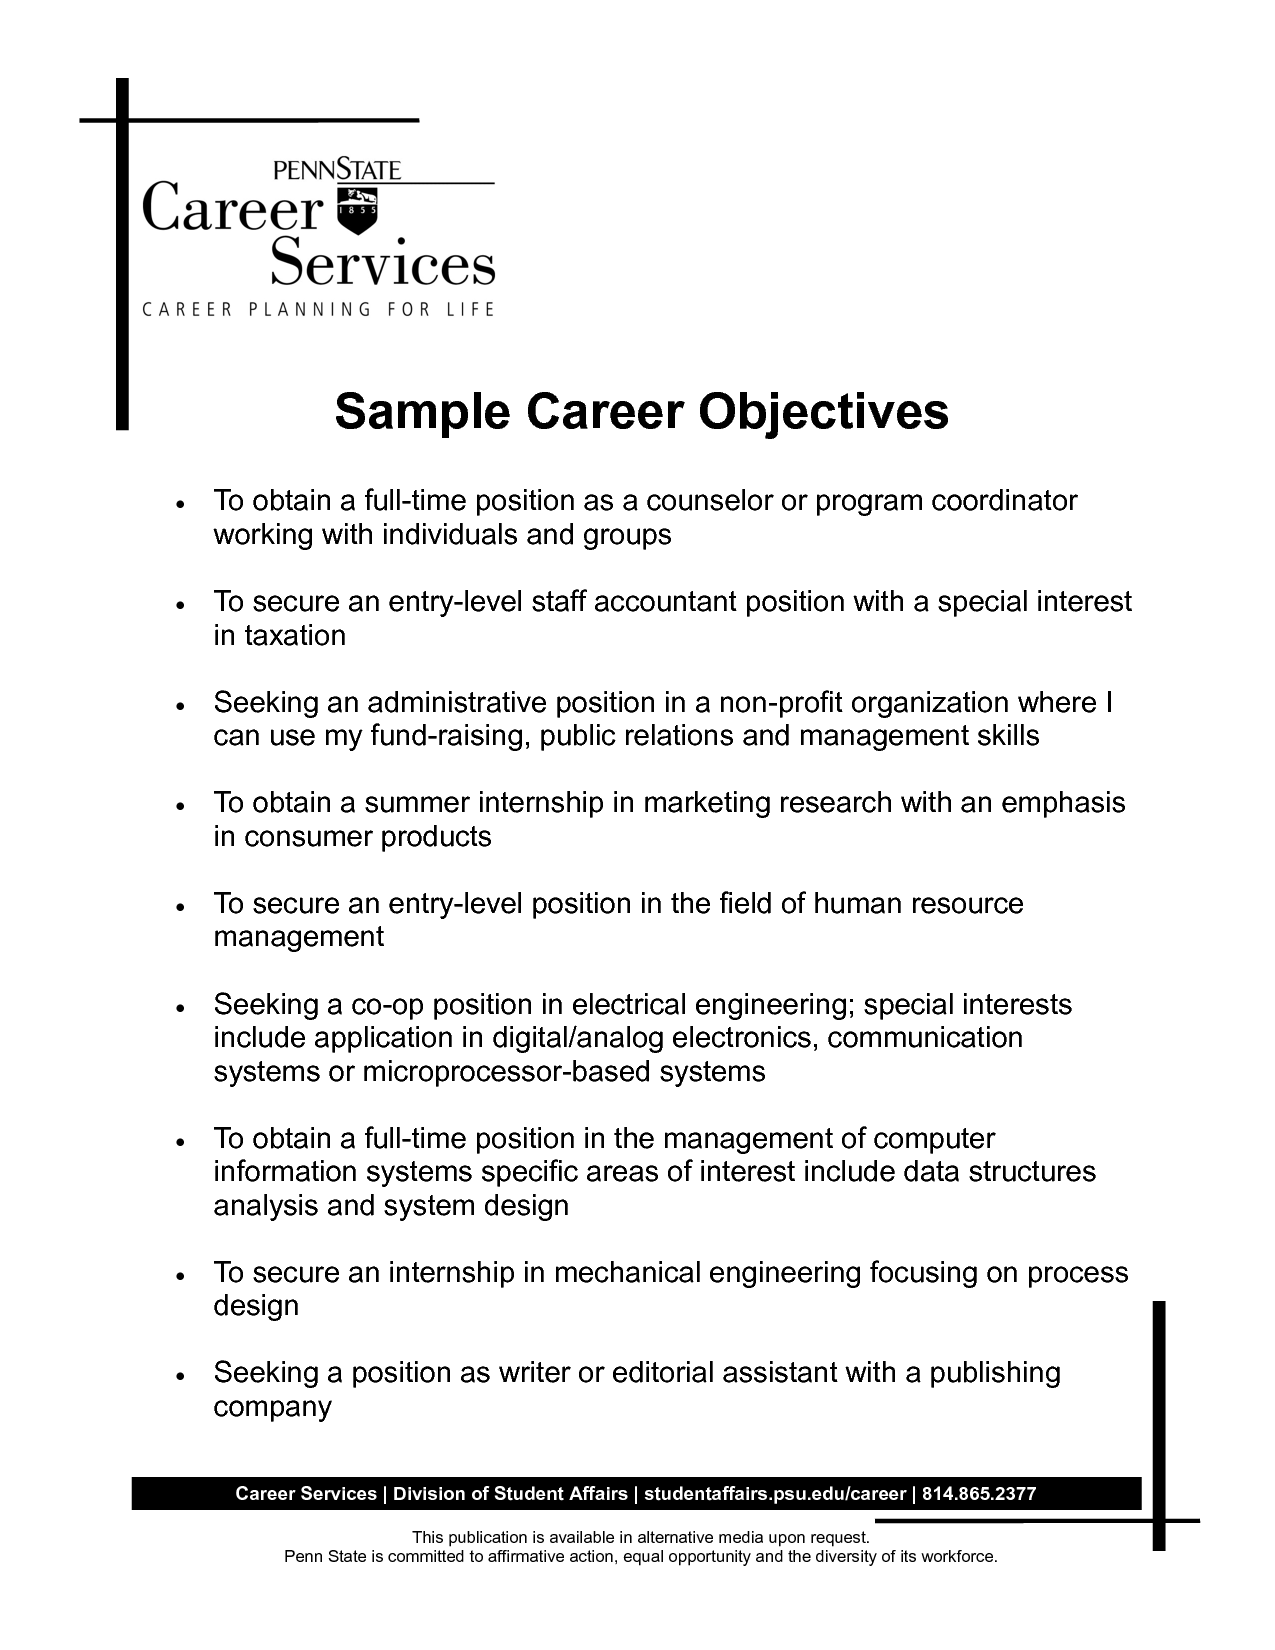 Superior Career Objective Resume Accountant   Http://www.resumecareer.info/career  Objective Resume Accountant 17/